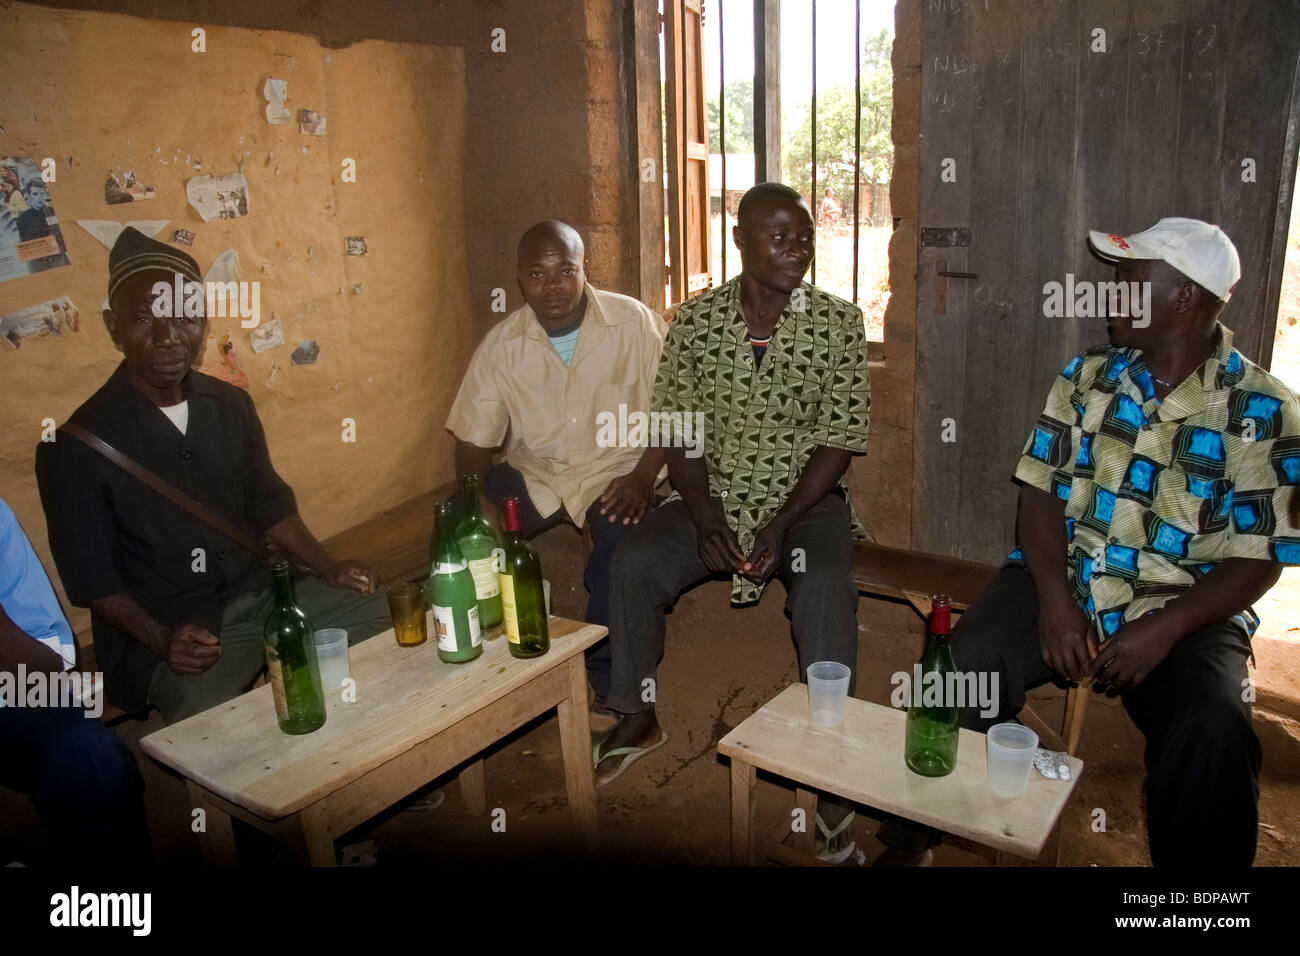 Men drinking home-made palm wine in palm wine tavern Bamessing village Bamenda Highlands Cameroon - Stock Image